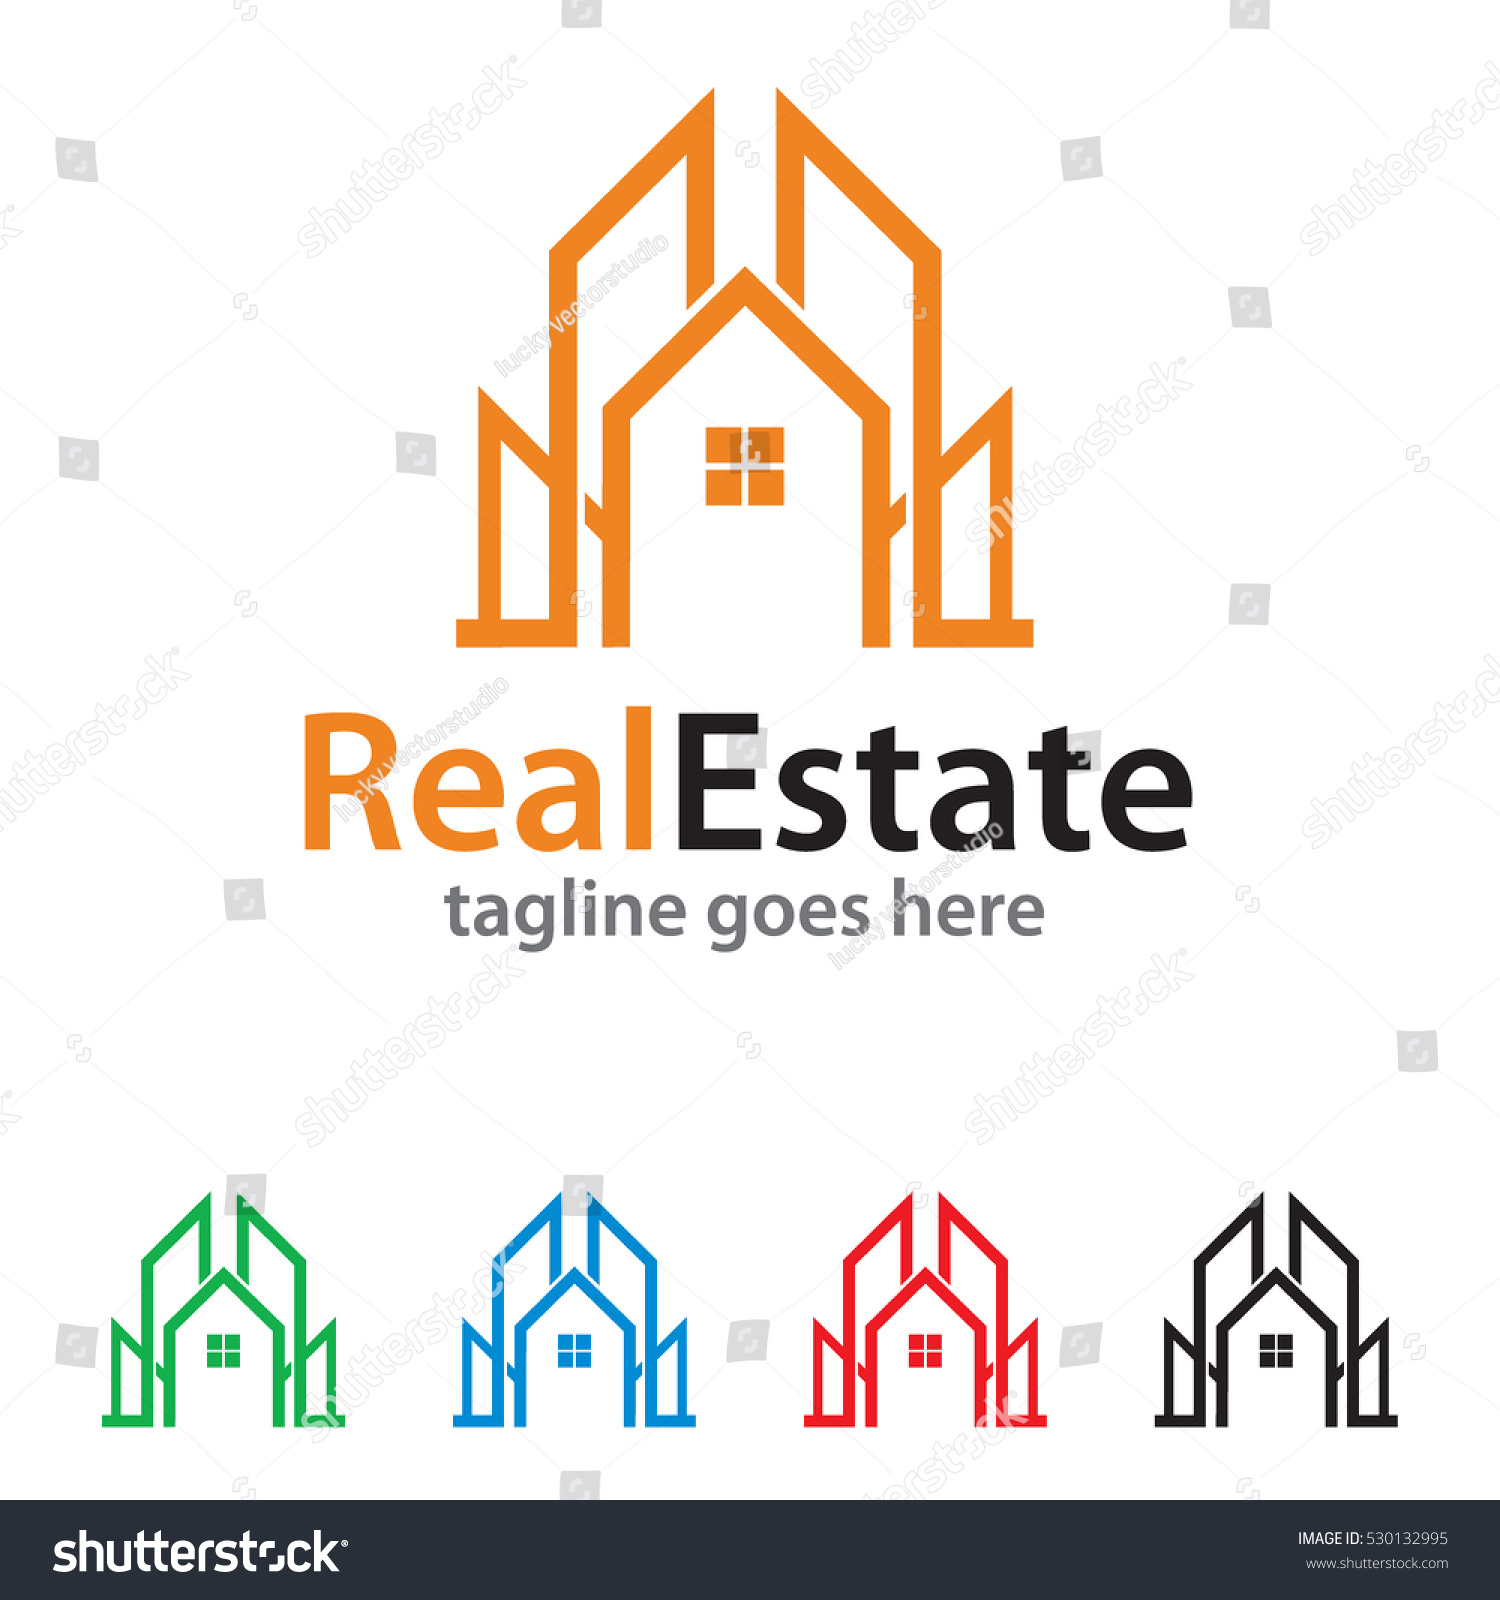 real estate design templates